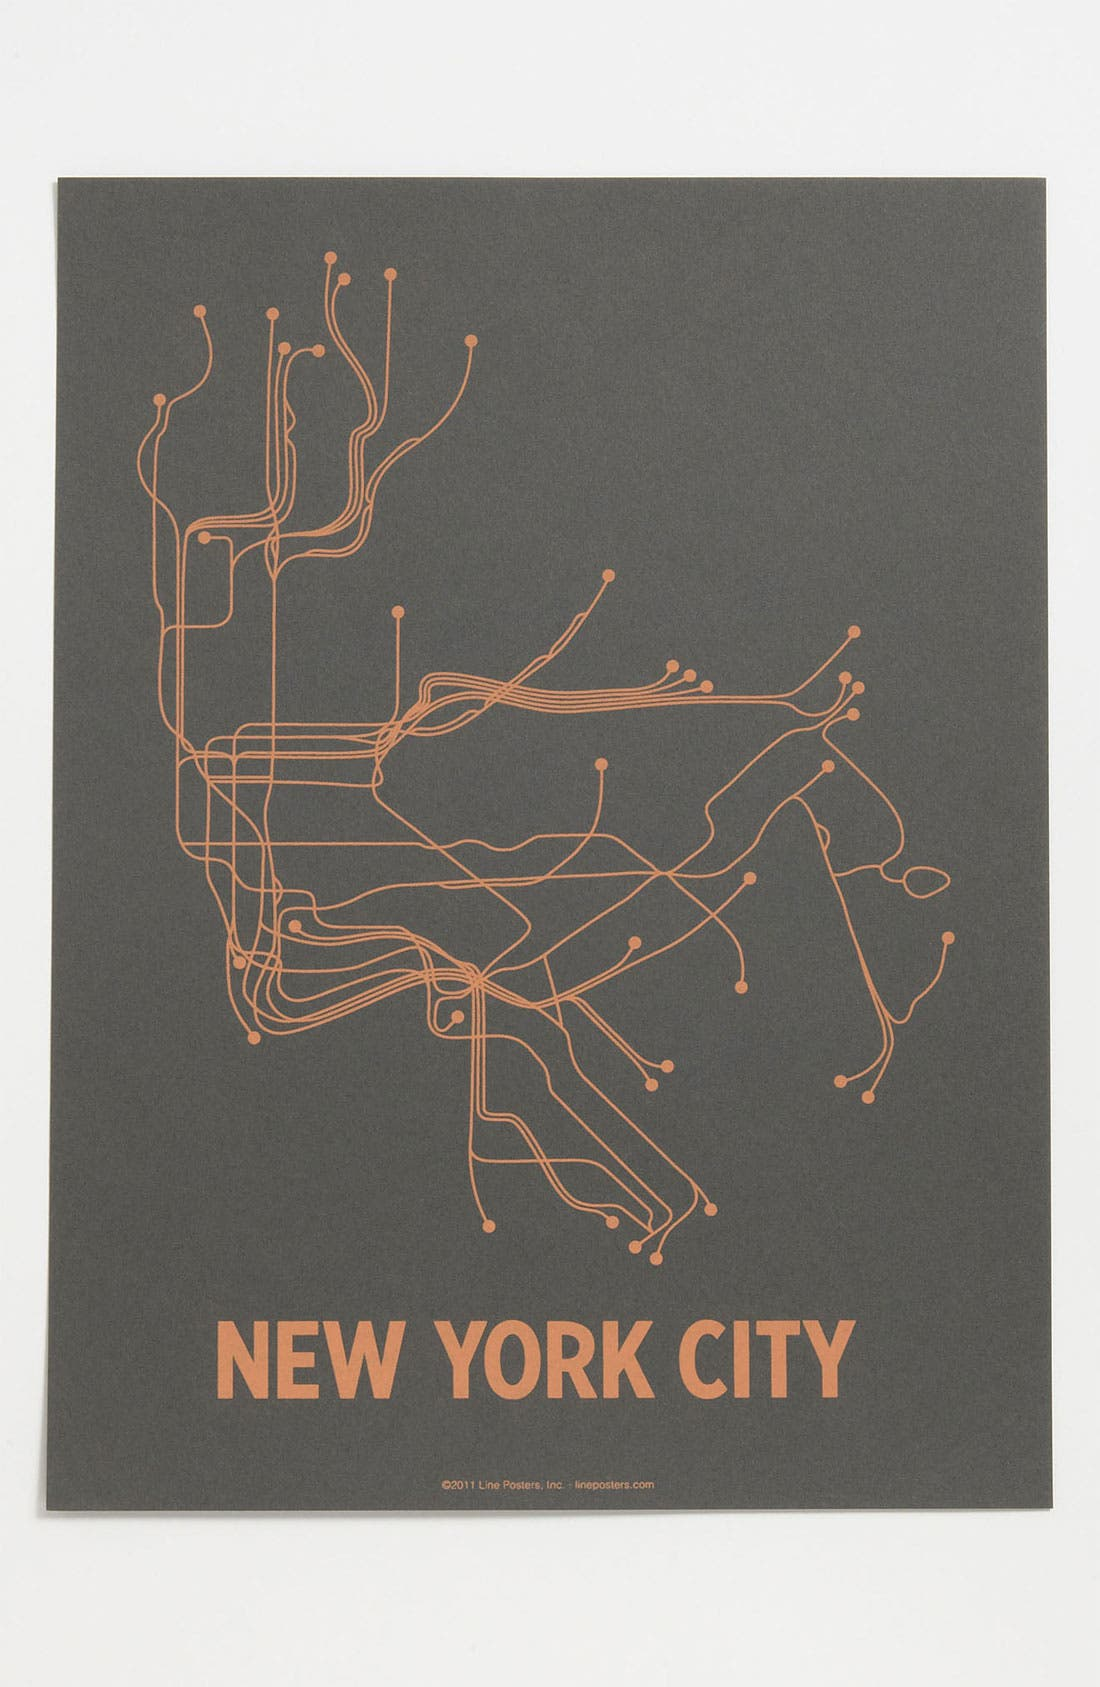 Alternate Image 1 Selected - Line Posters 'New York City Transit System - Small' Print